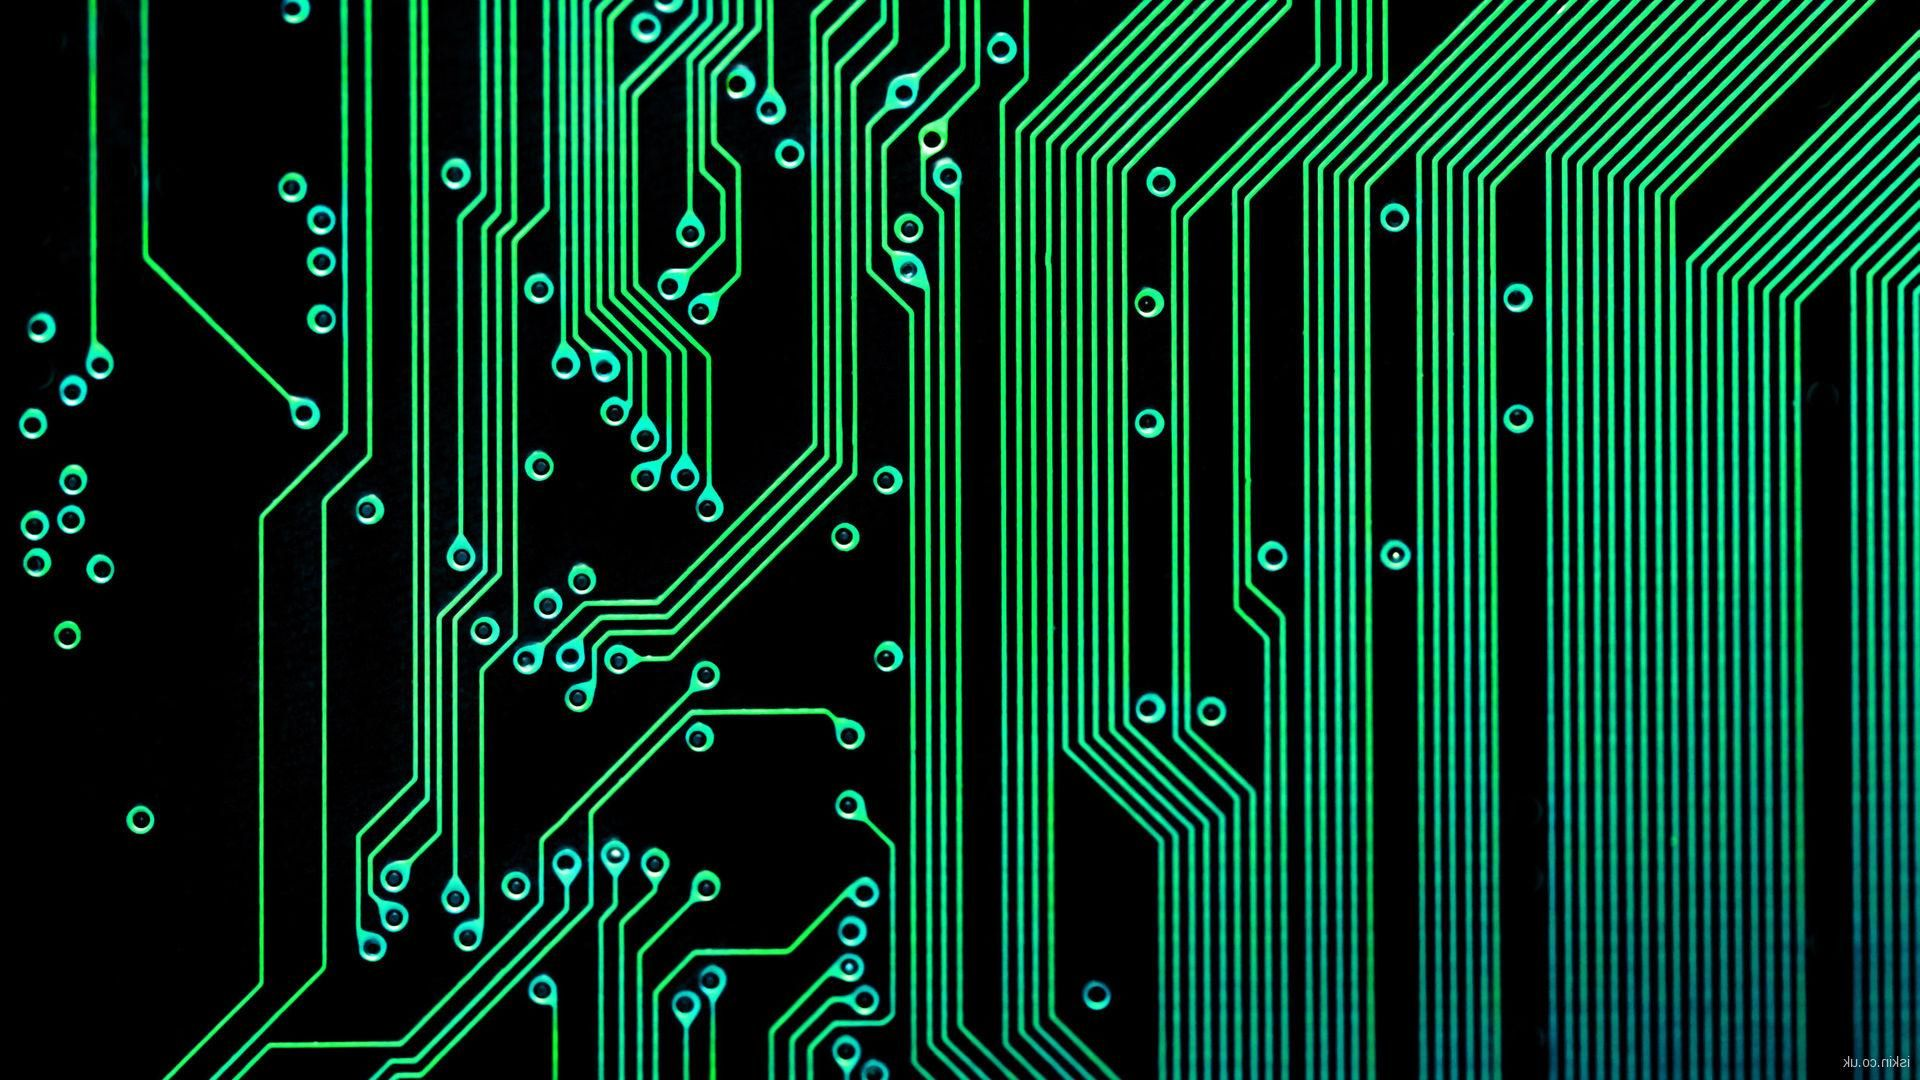 hight resolution of electronic circuit wallpaper